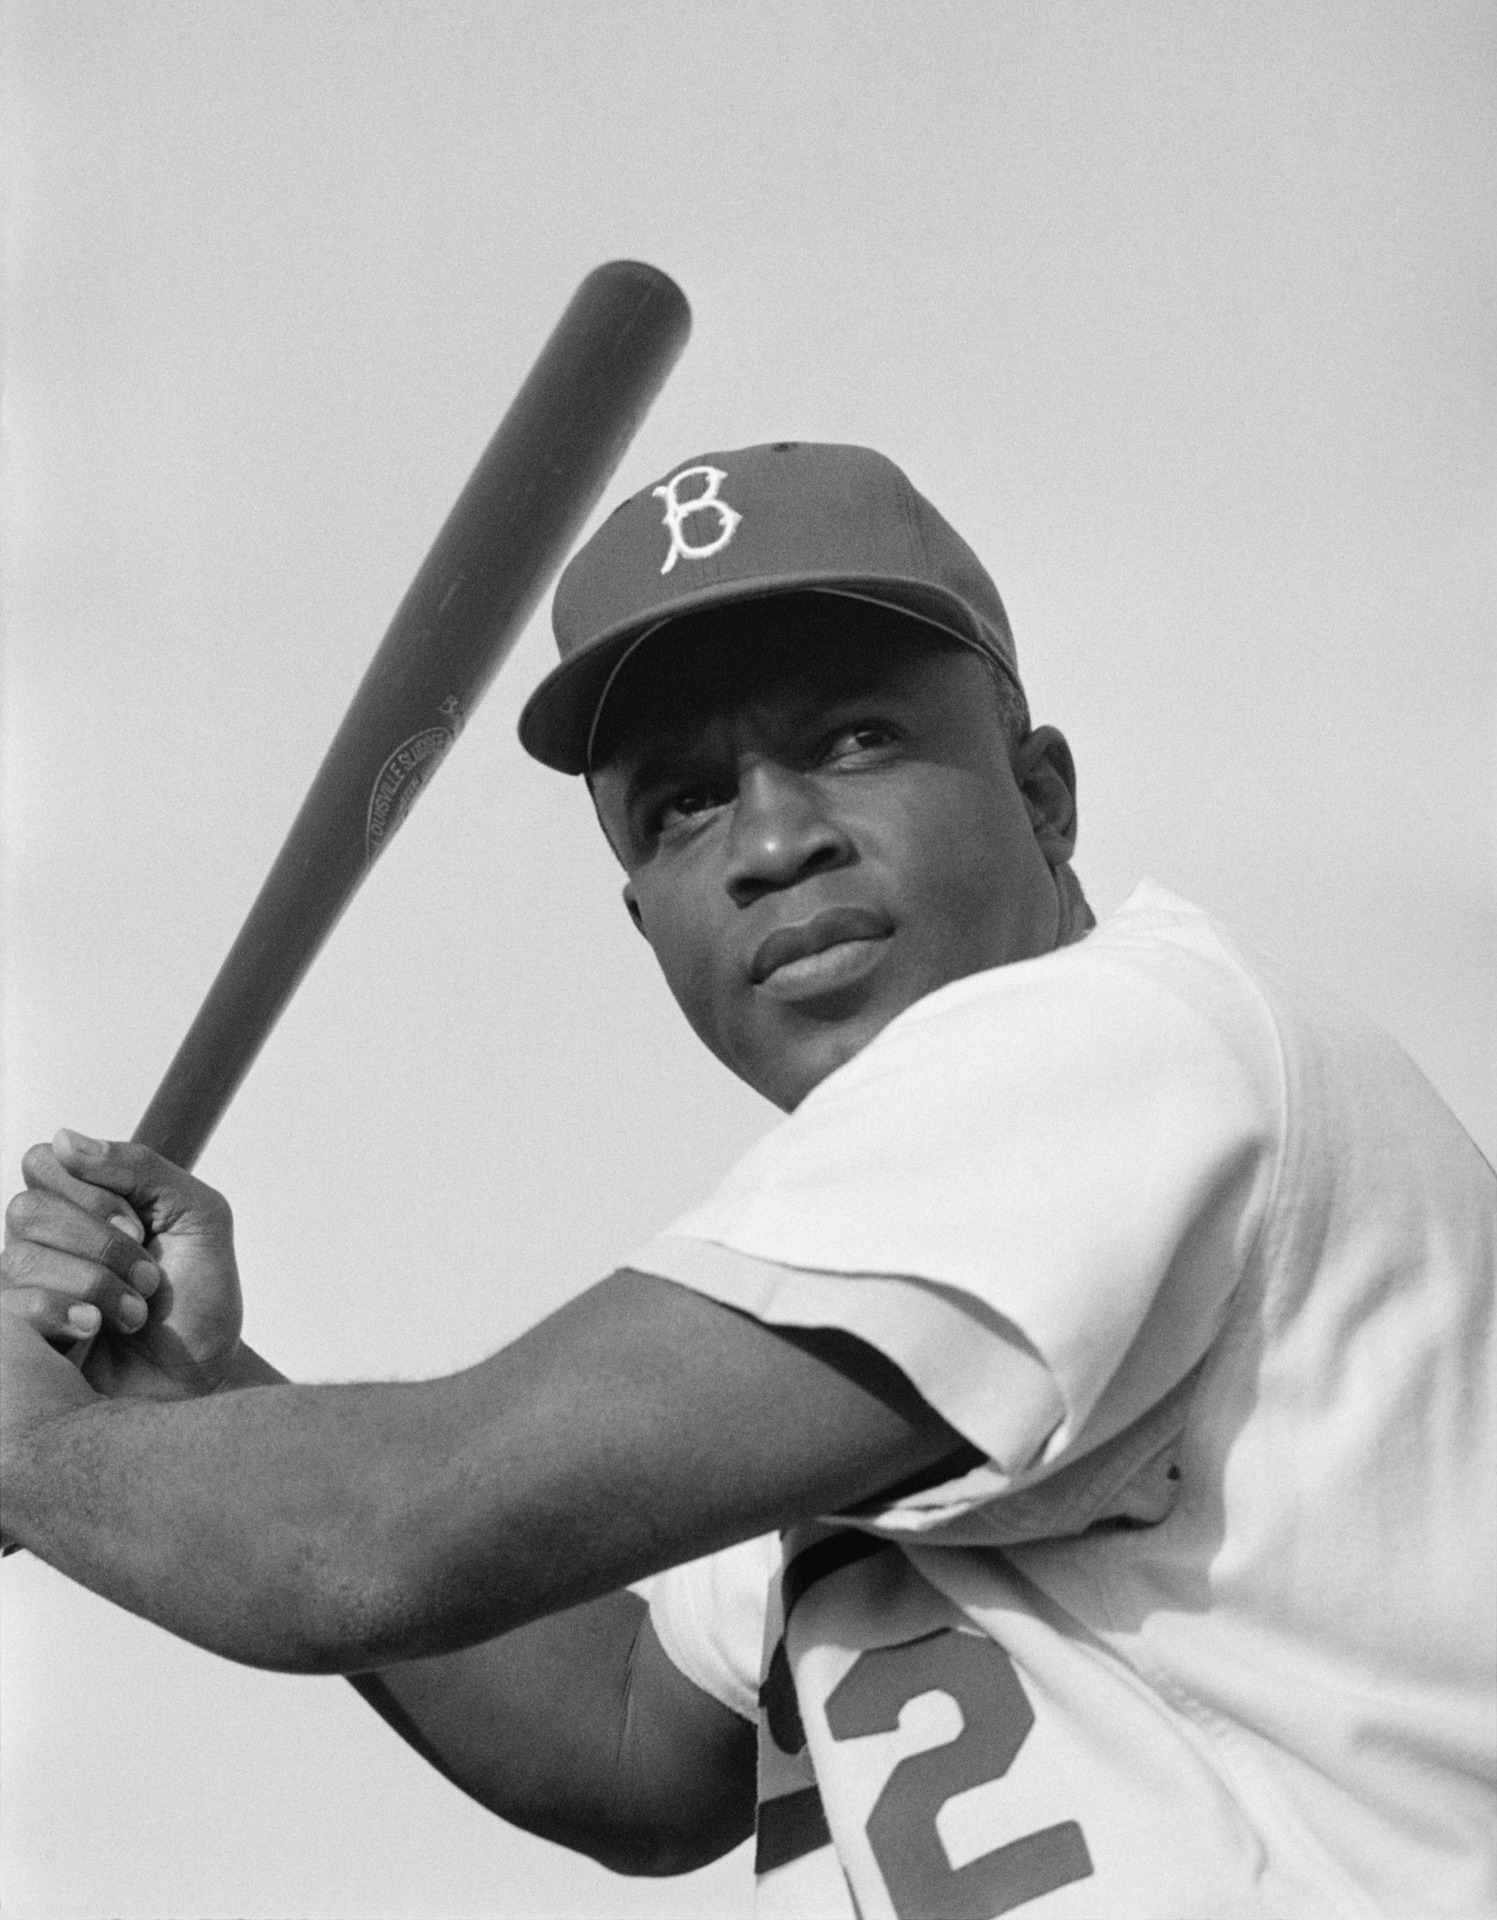 https://pixabay.com/photos/jackie-robinson-1172118/